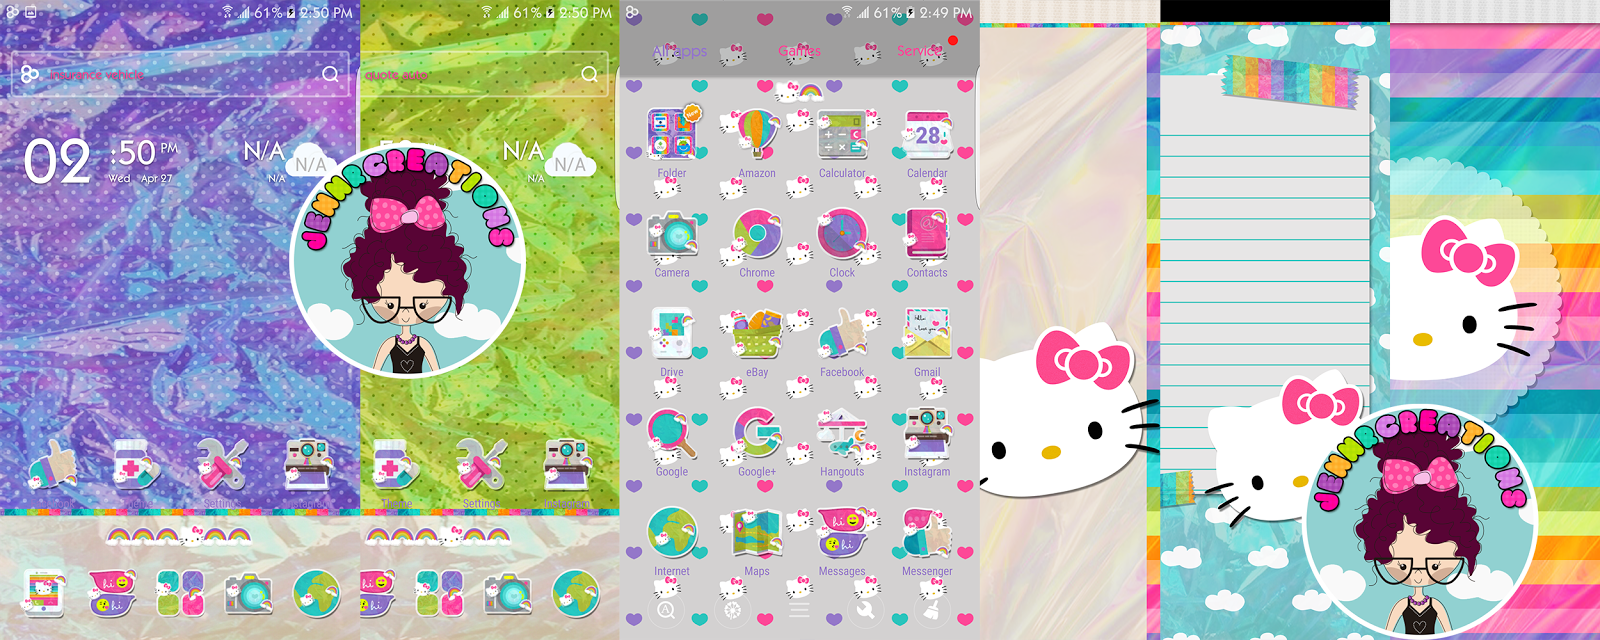 Jennrcreations Hologram Hello Kitty Go Launcher